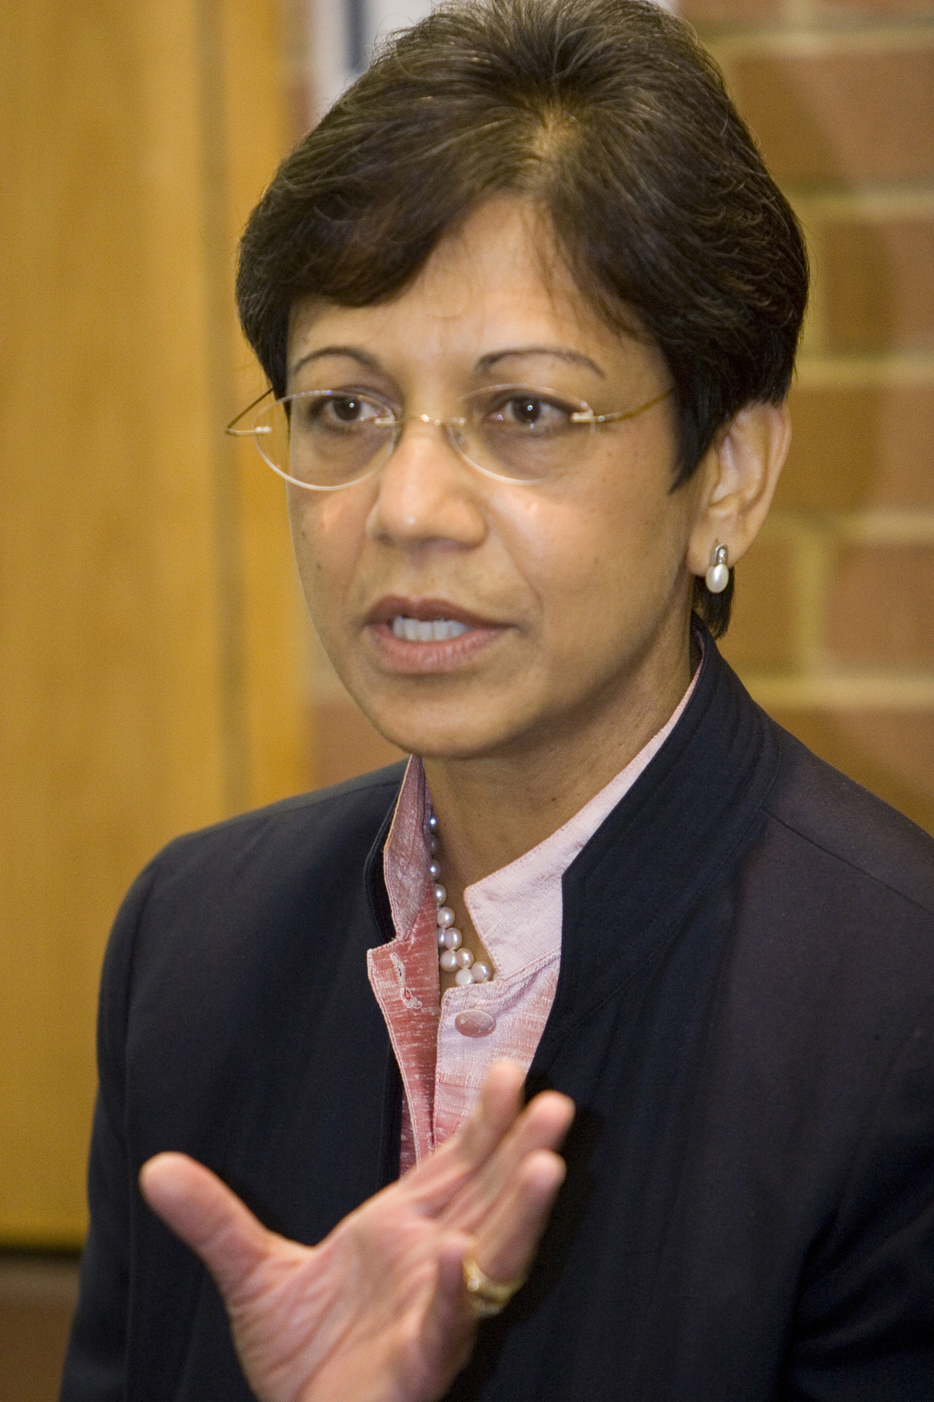 DuPont SVP and Chief Science & Technology Officer Uma Chowdhry at the Experimental Station